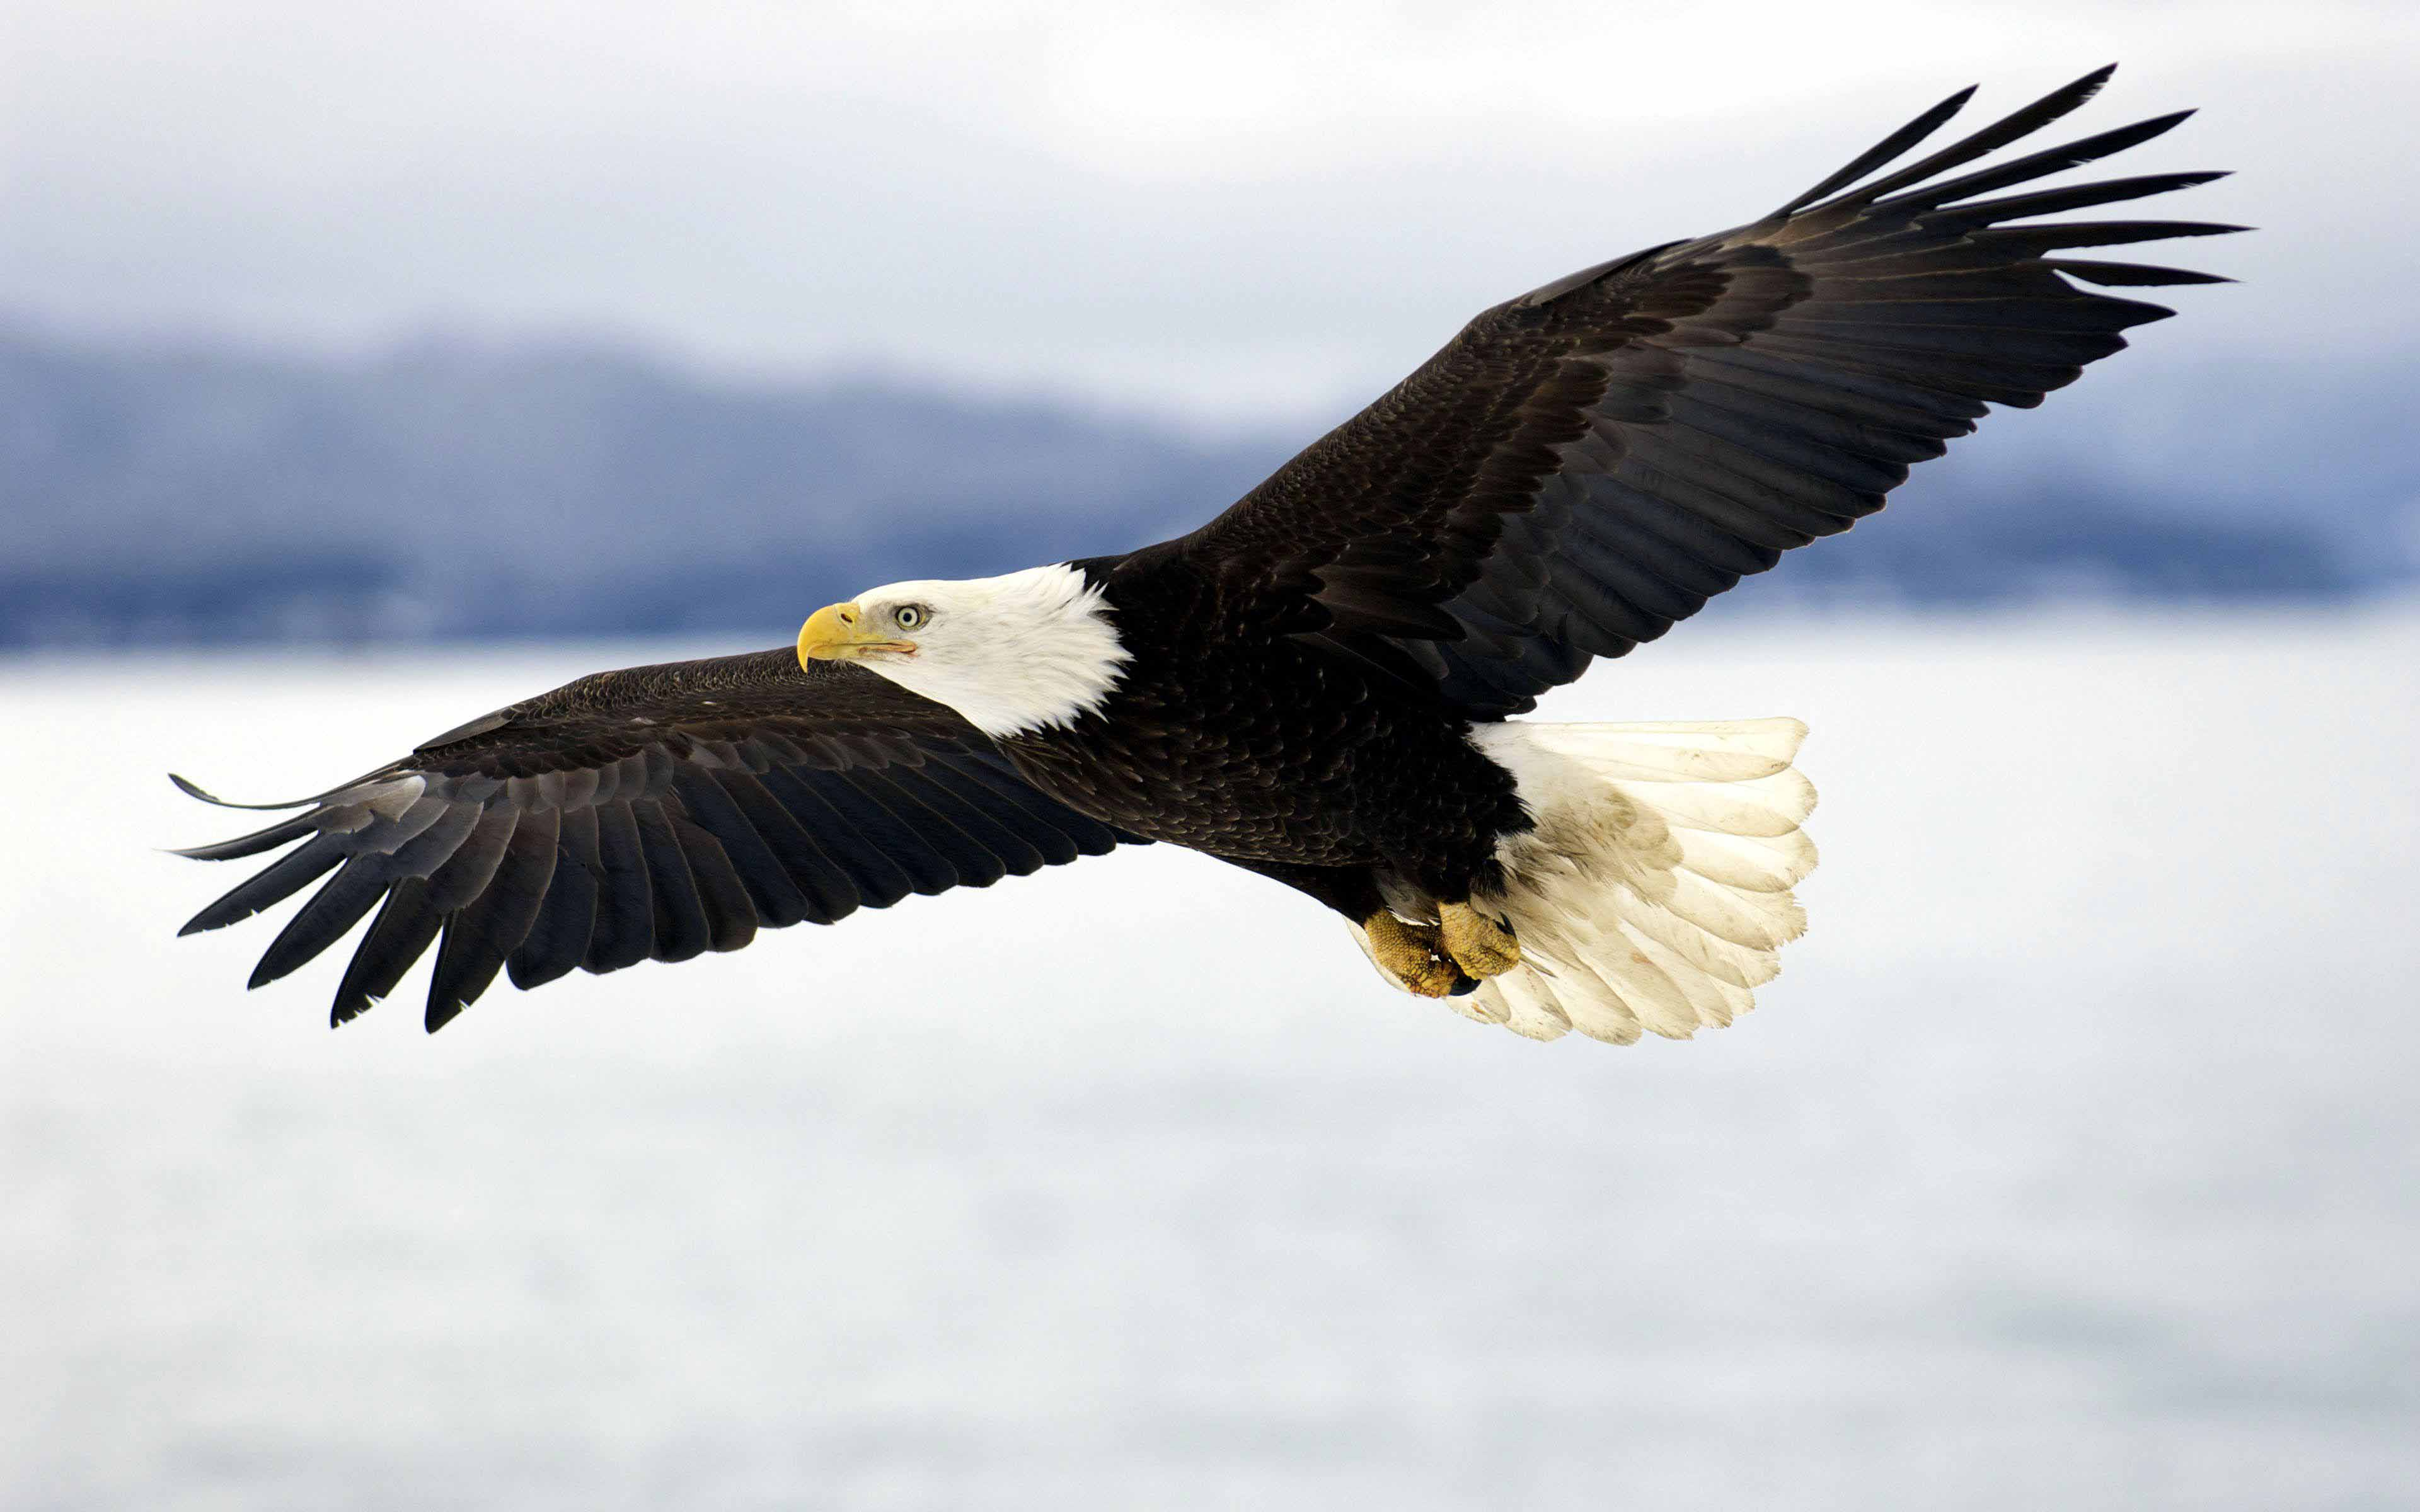 American Eagle Flying HD Wallpaper Background Images 3840x2400